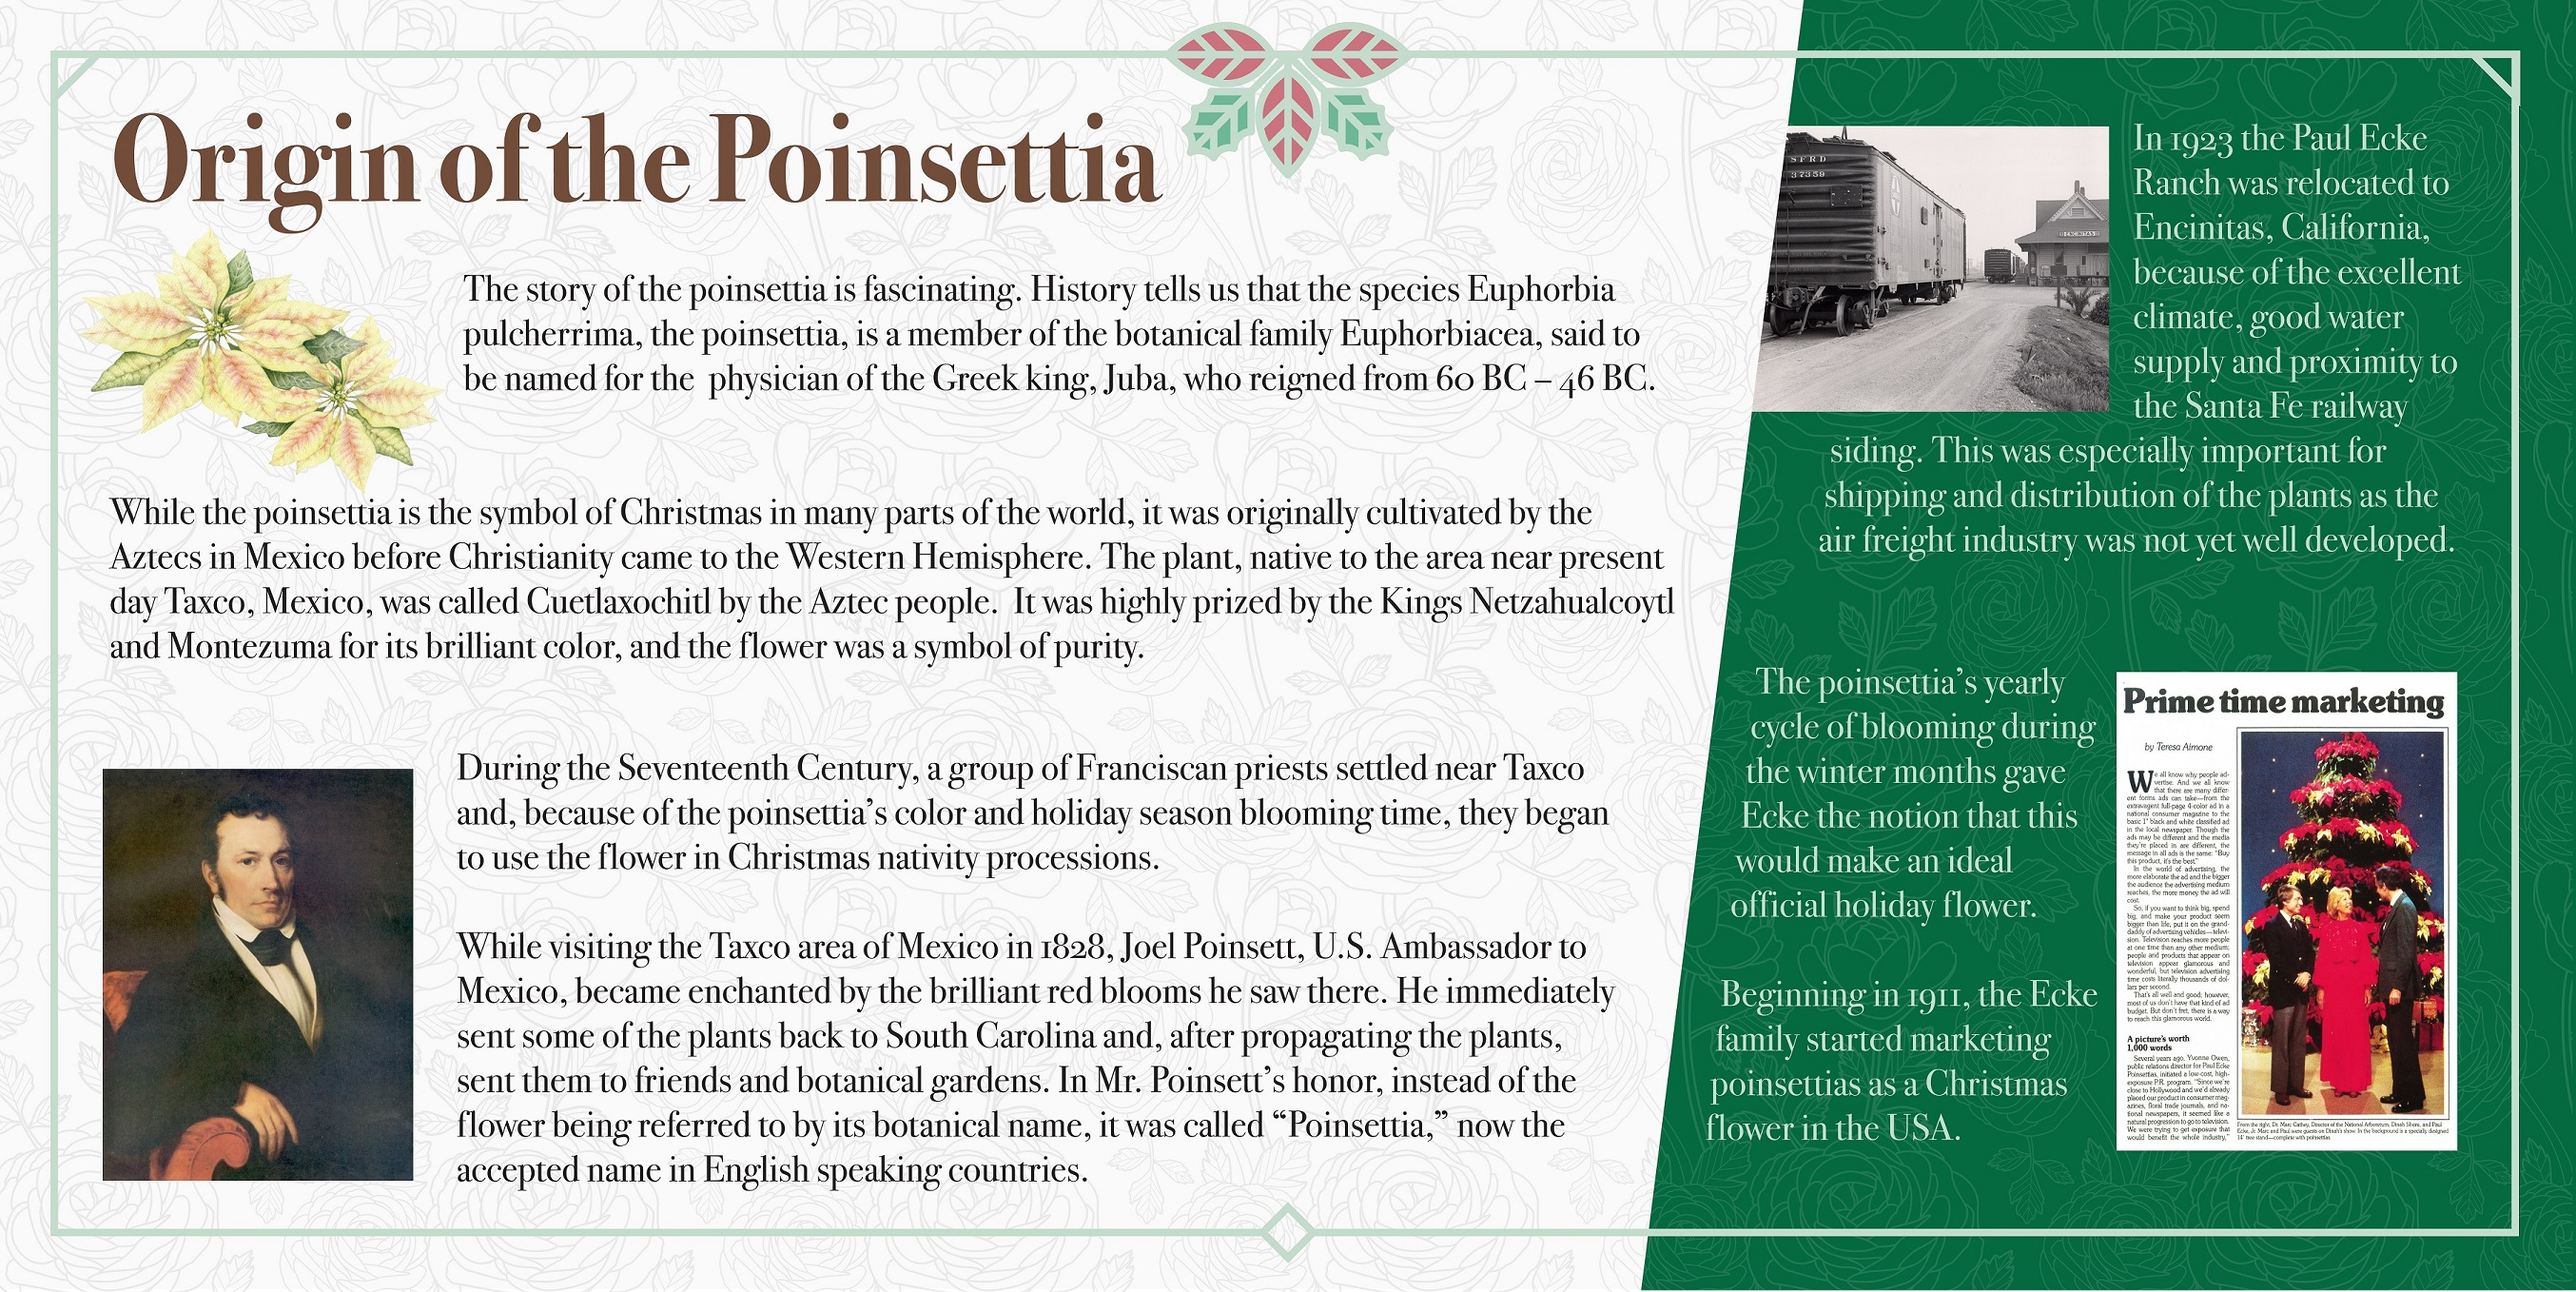 Origin of the Poinsettia2